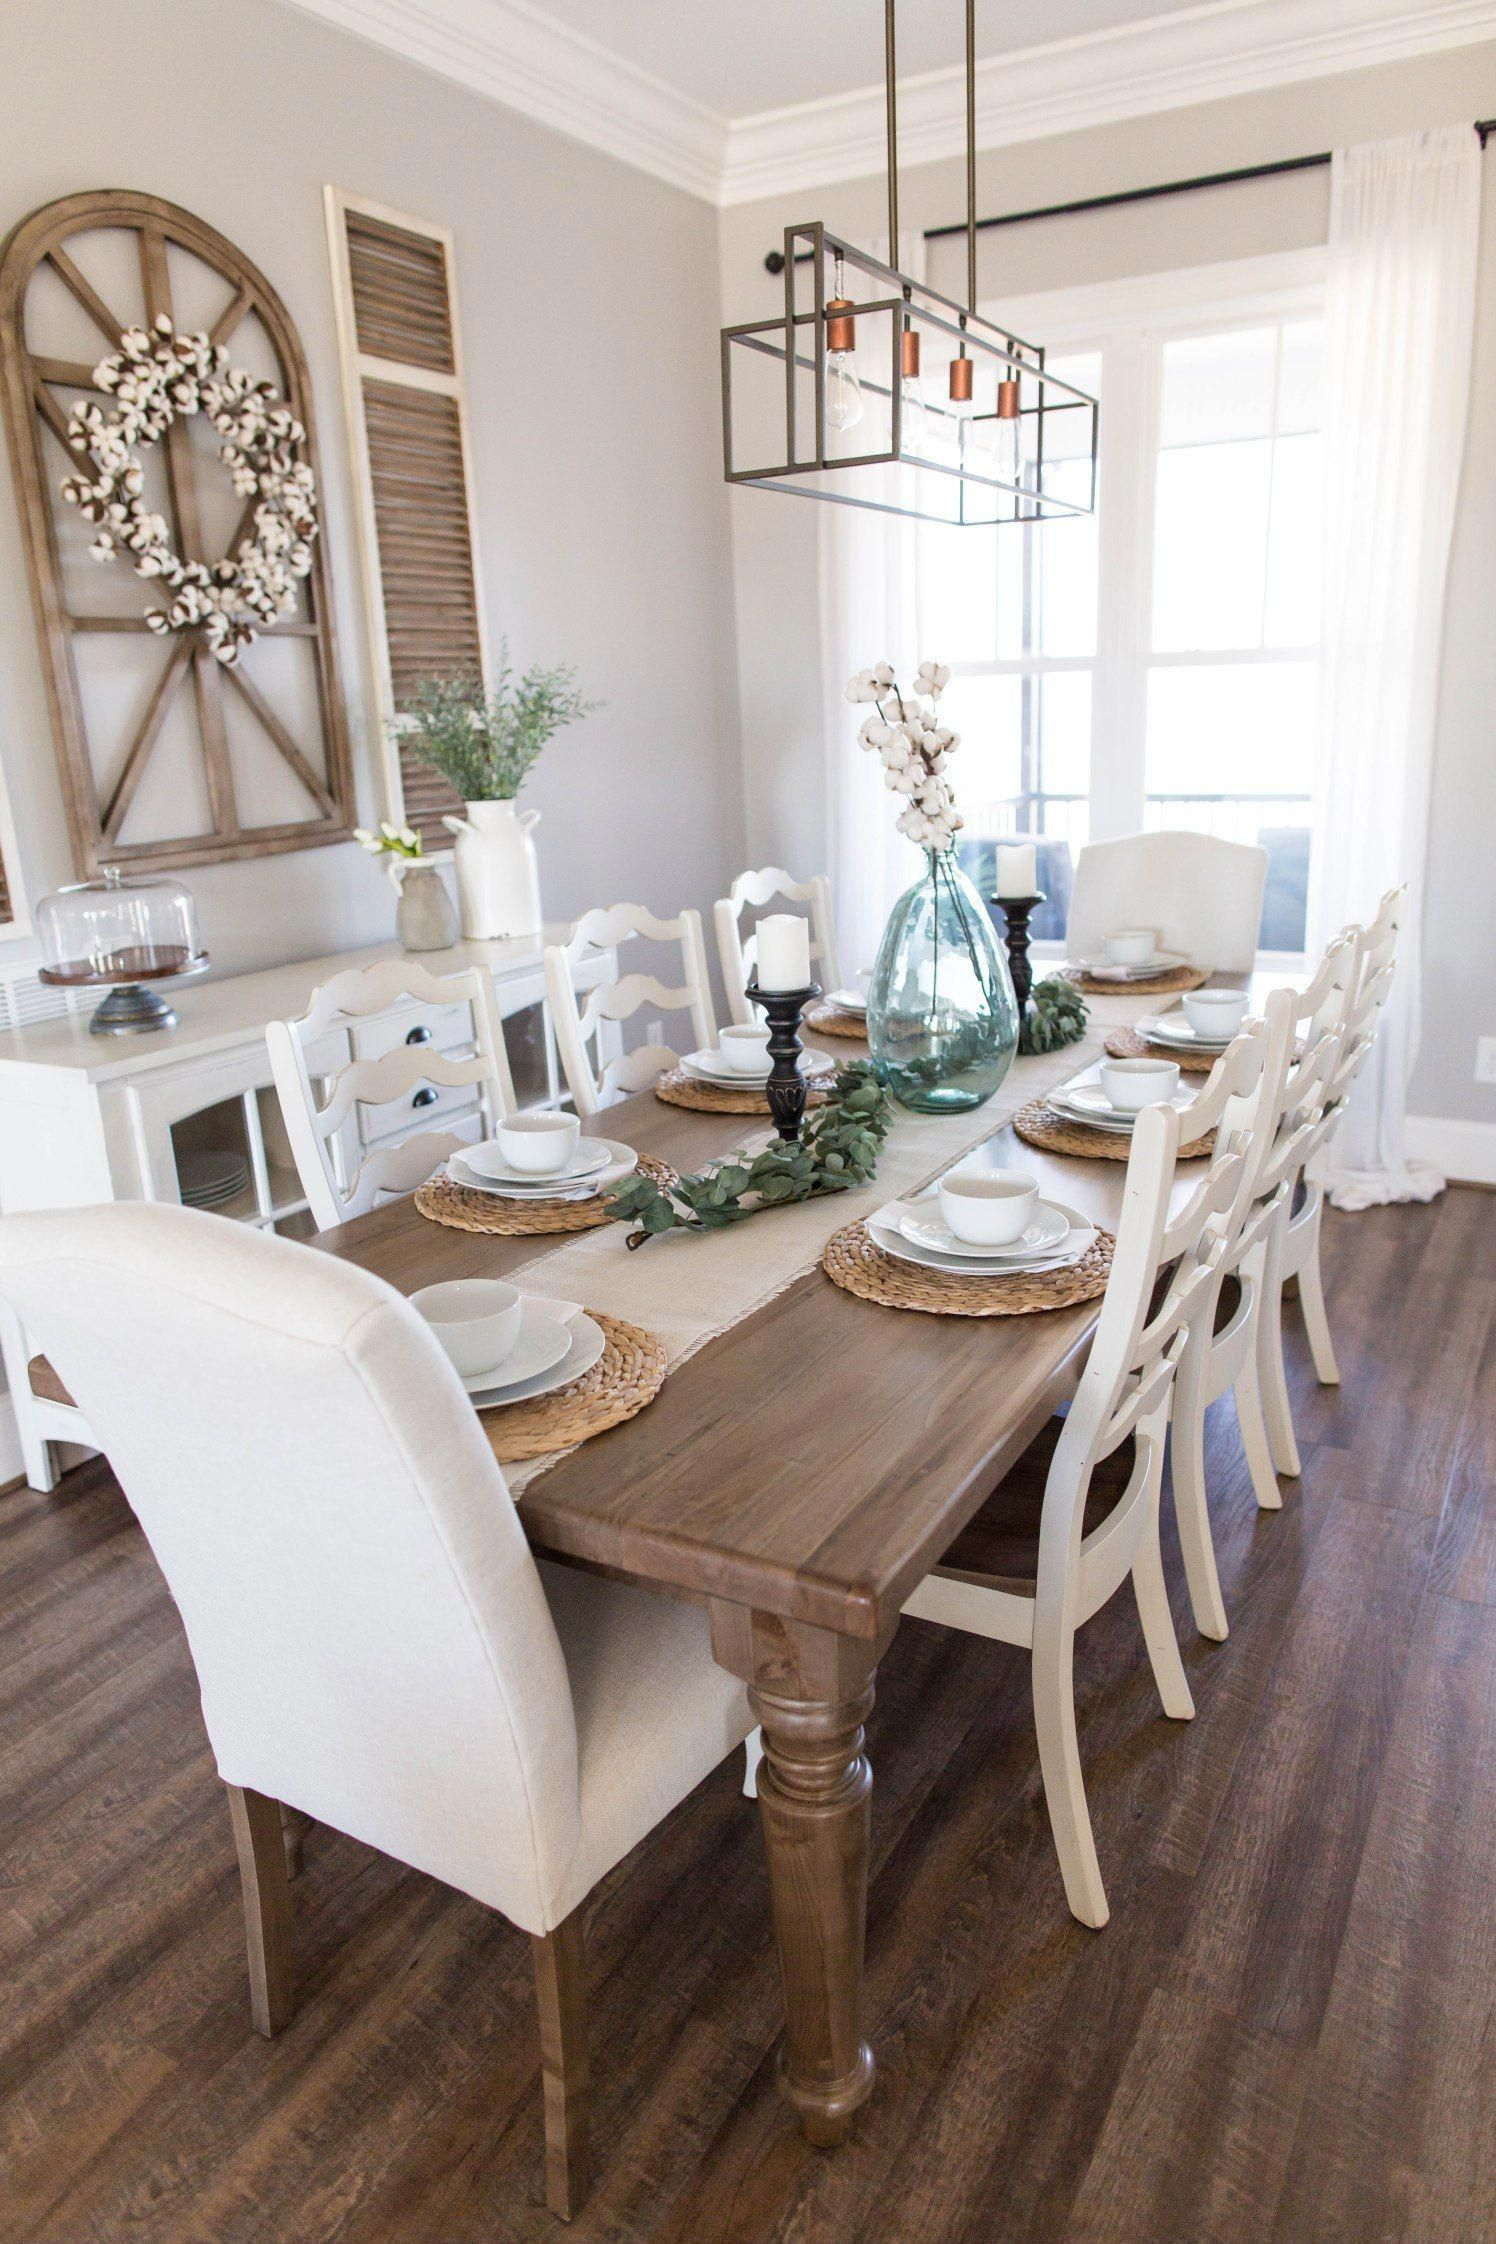 Farmhouse Decorating Ideas For Dining Room Table